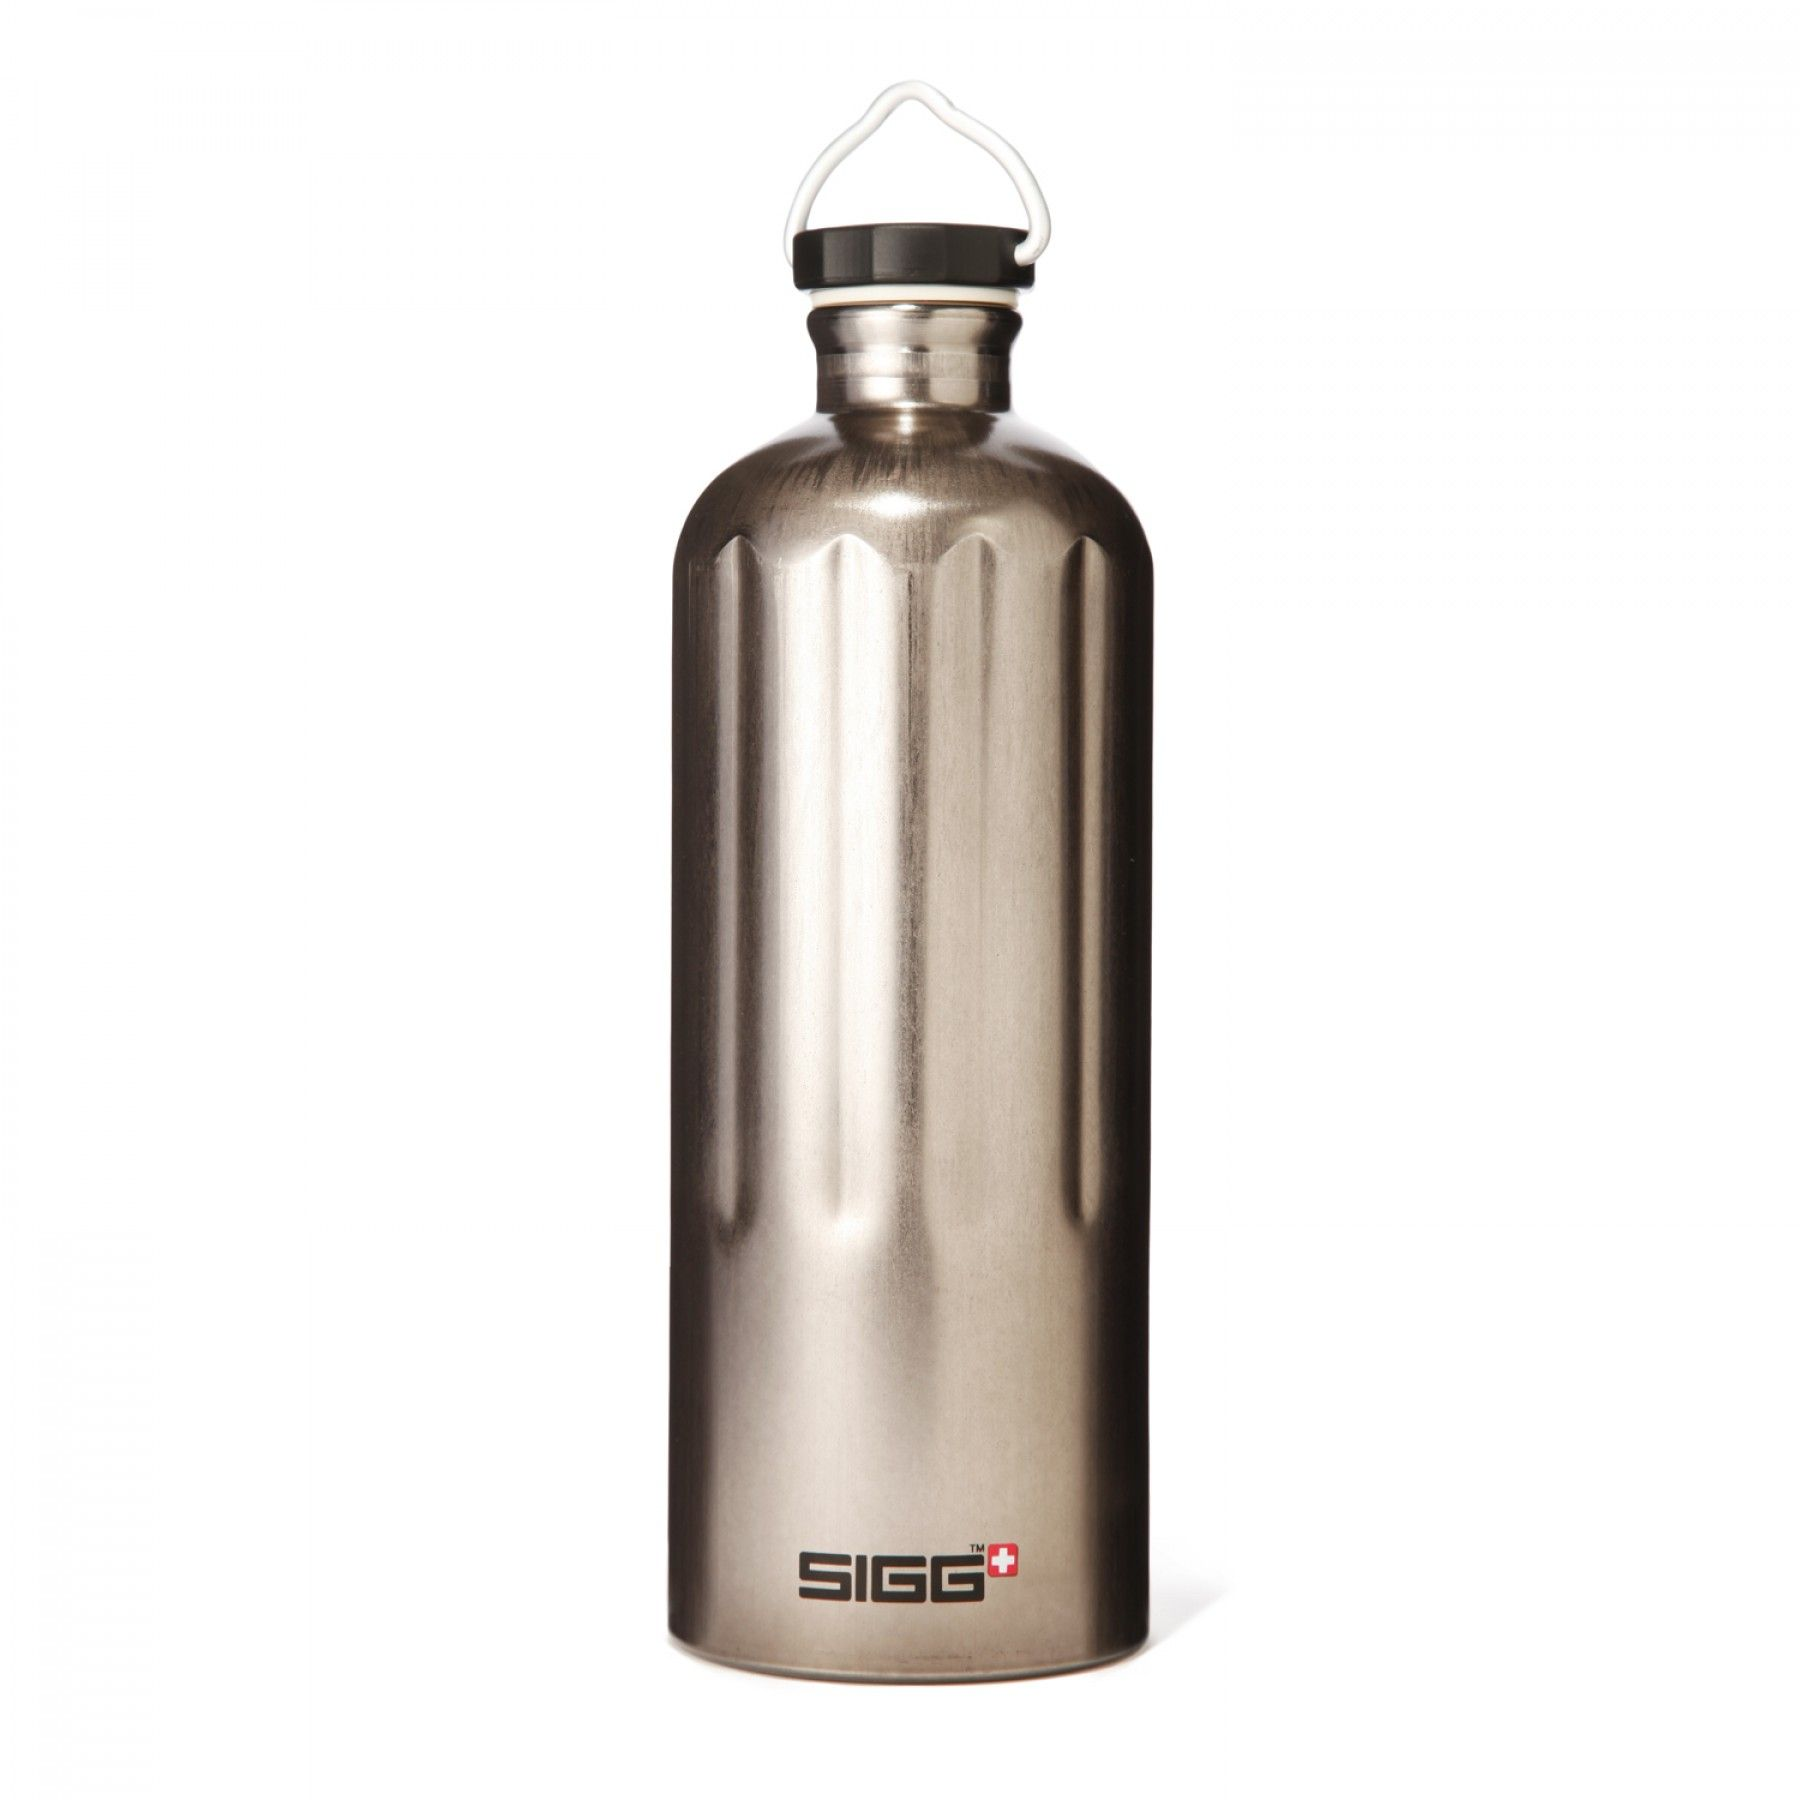 Sigg Heritage 1 Liter Bottle Glass Containers Bottle Glass